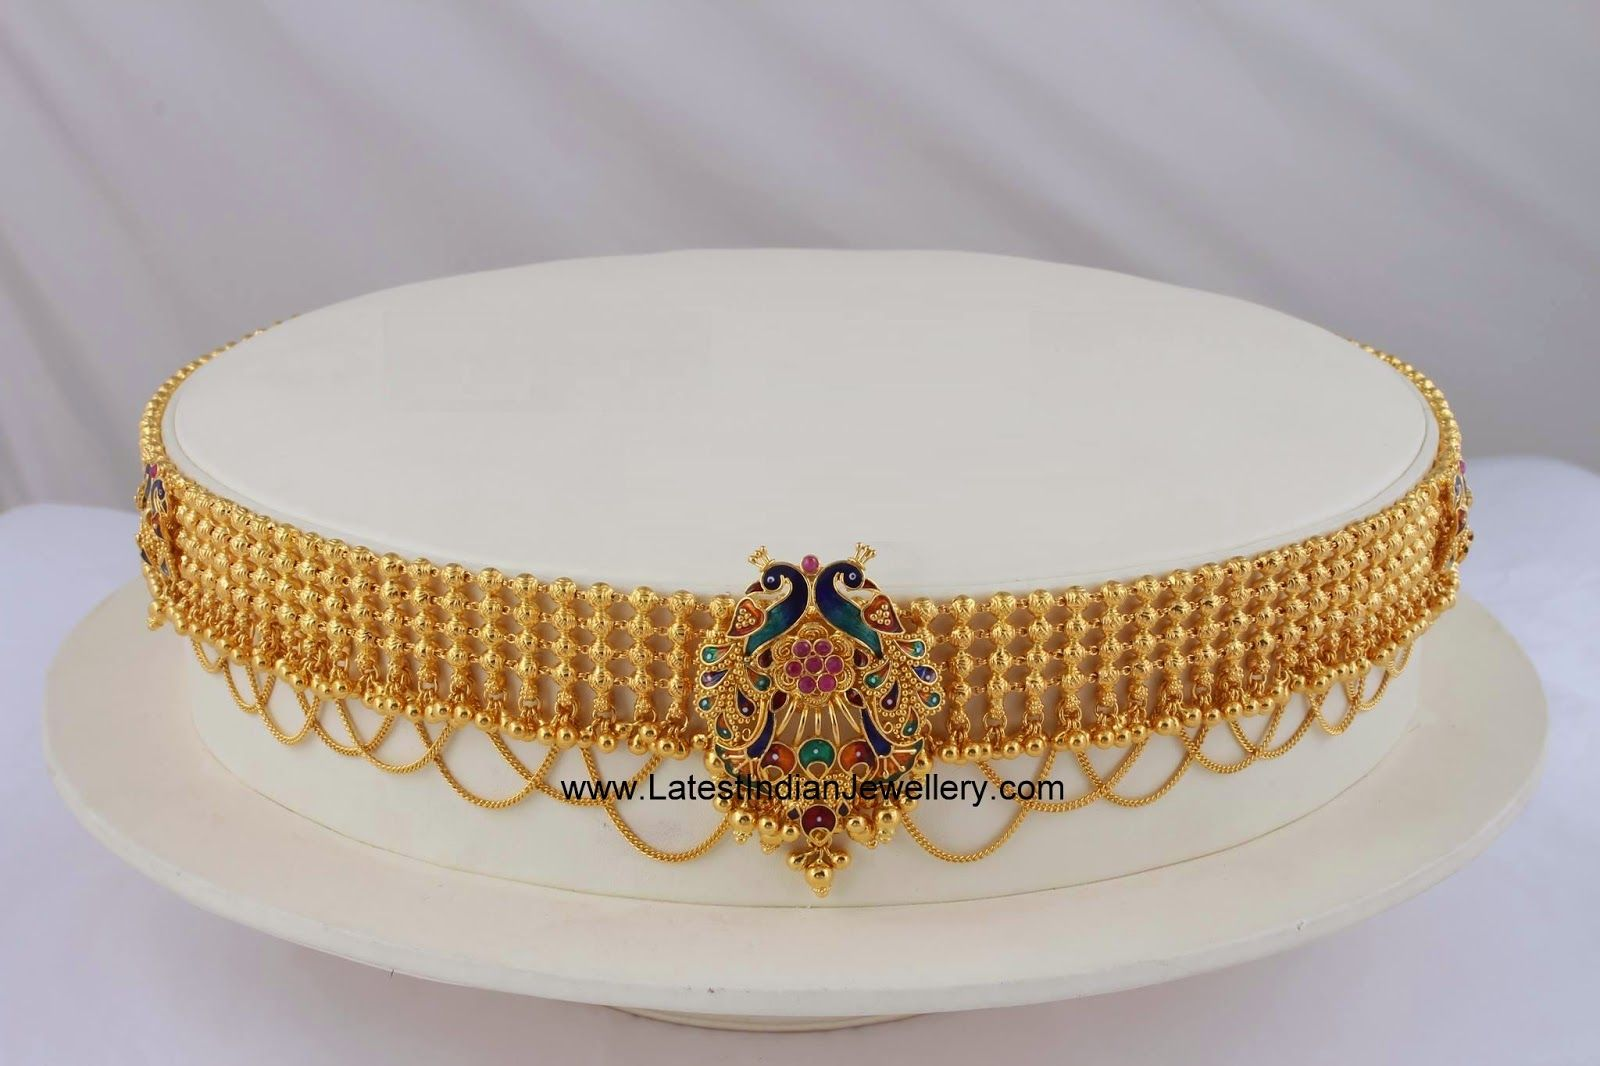 Chain model baby vaddanam vadannam pinterest model chain and